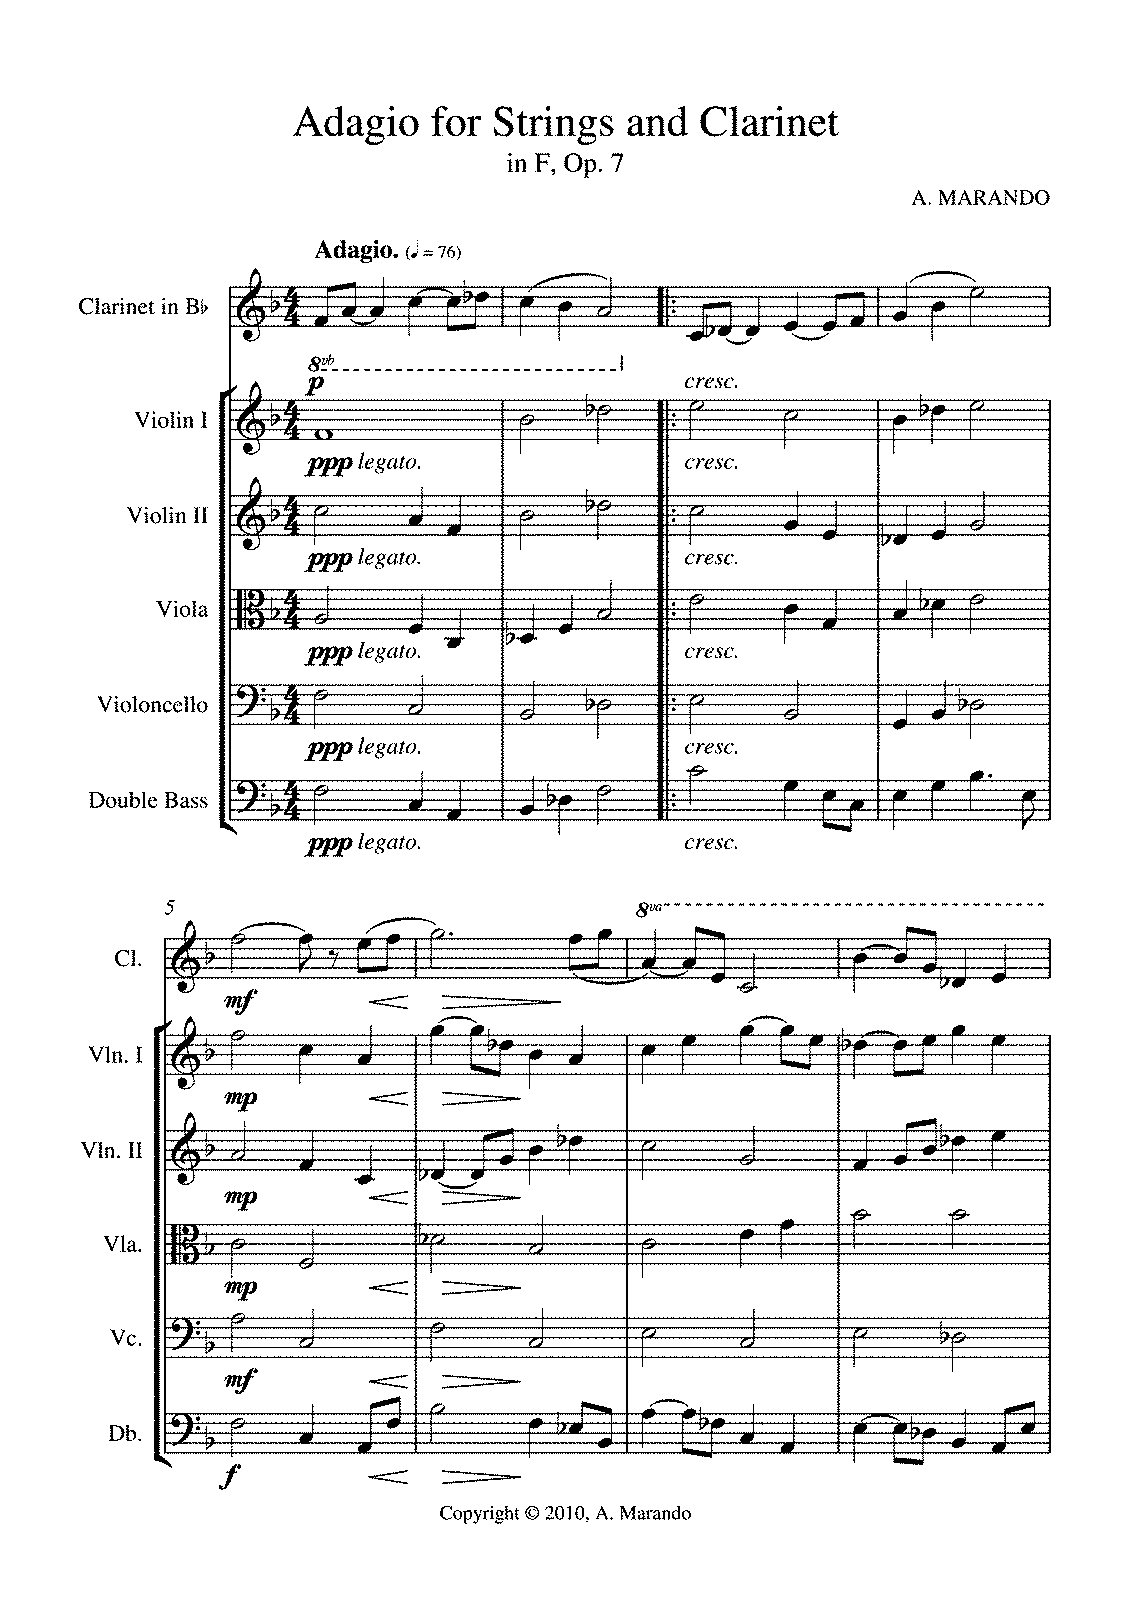 PMLP133323-Op. 7 - Adagio for Strings and Clarinet -Full Score-.pdf